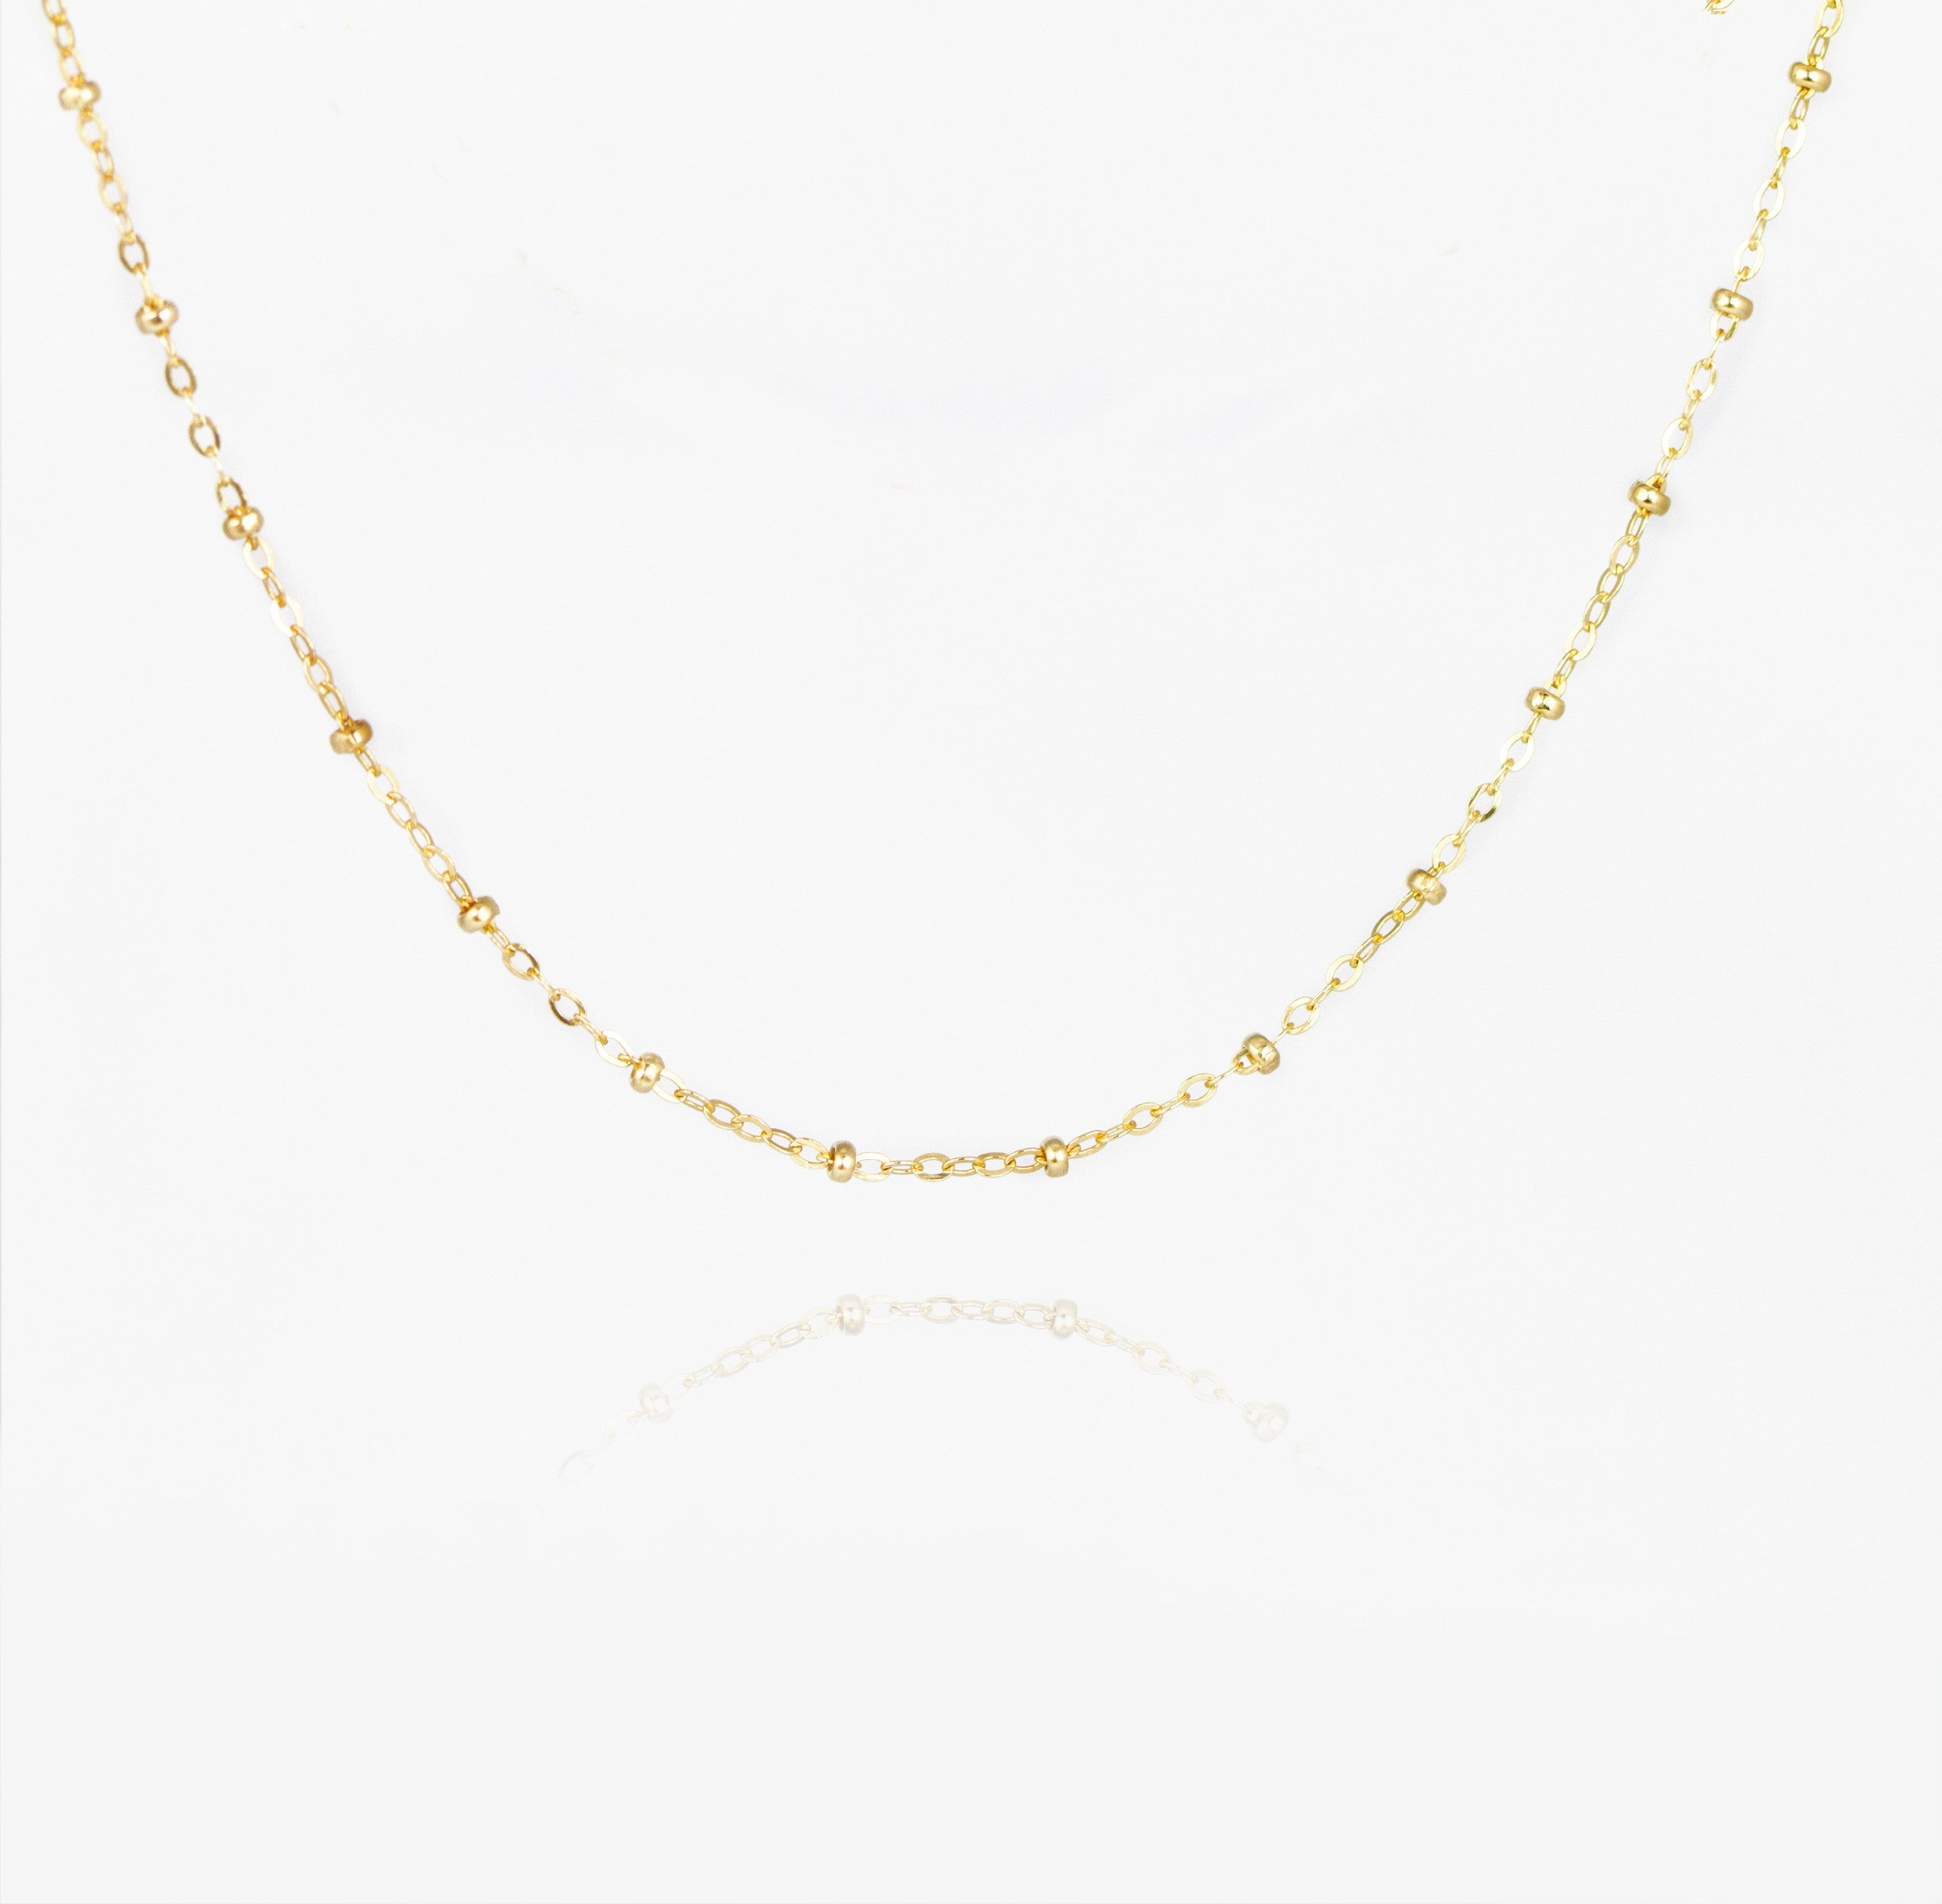 Beaded Chain Choker Necklace by Jamie Park Jewelry